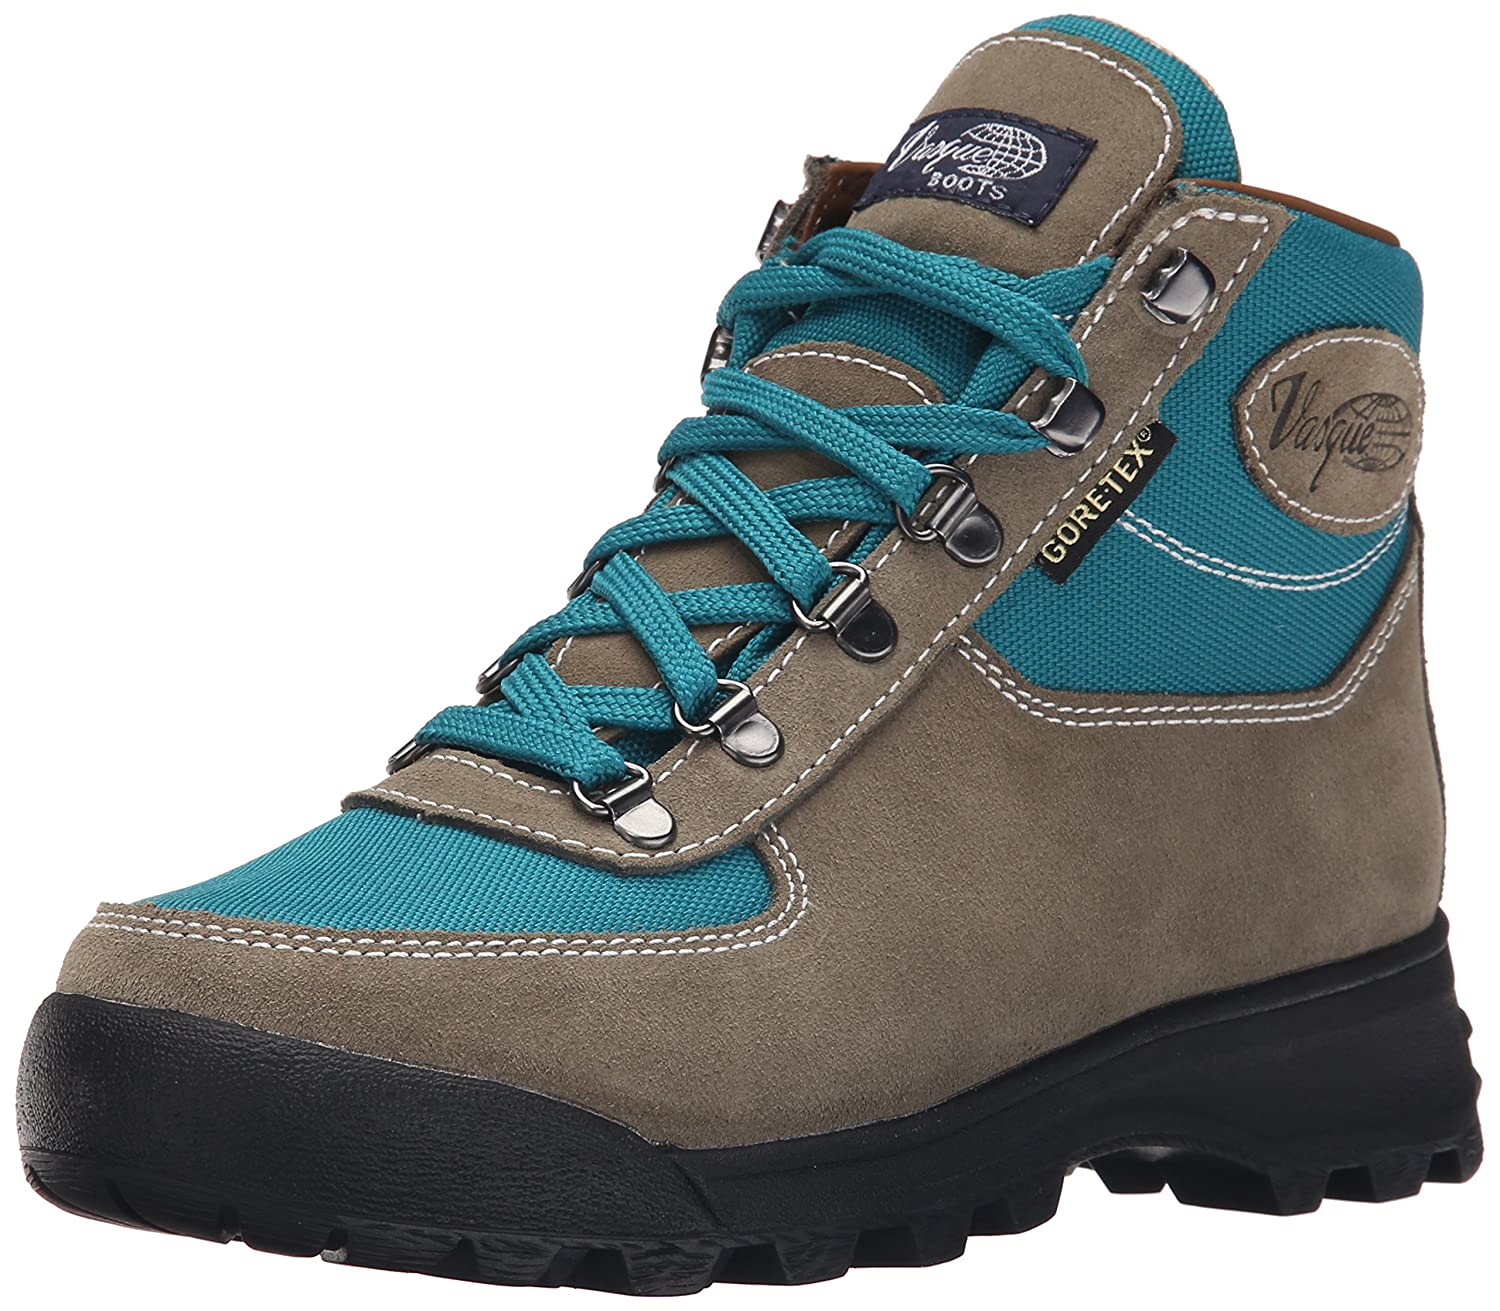 Vasque Women's Skywalk Gore-Tex Backpacking Boot B00ZUY4L74 8 W US|Sage/Everglade